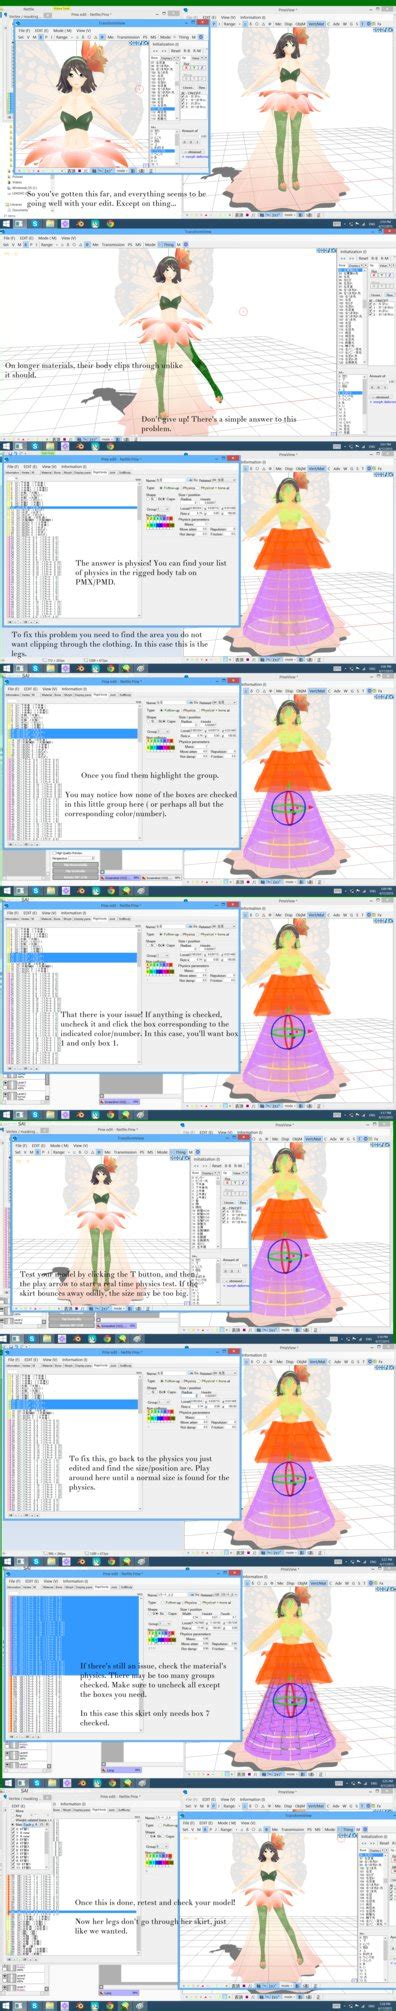 mmd remove floor mmd tutorial fixing clipping issues by k channnn